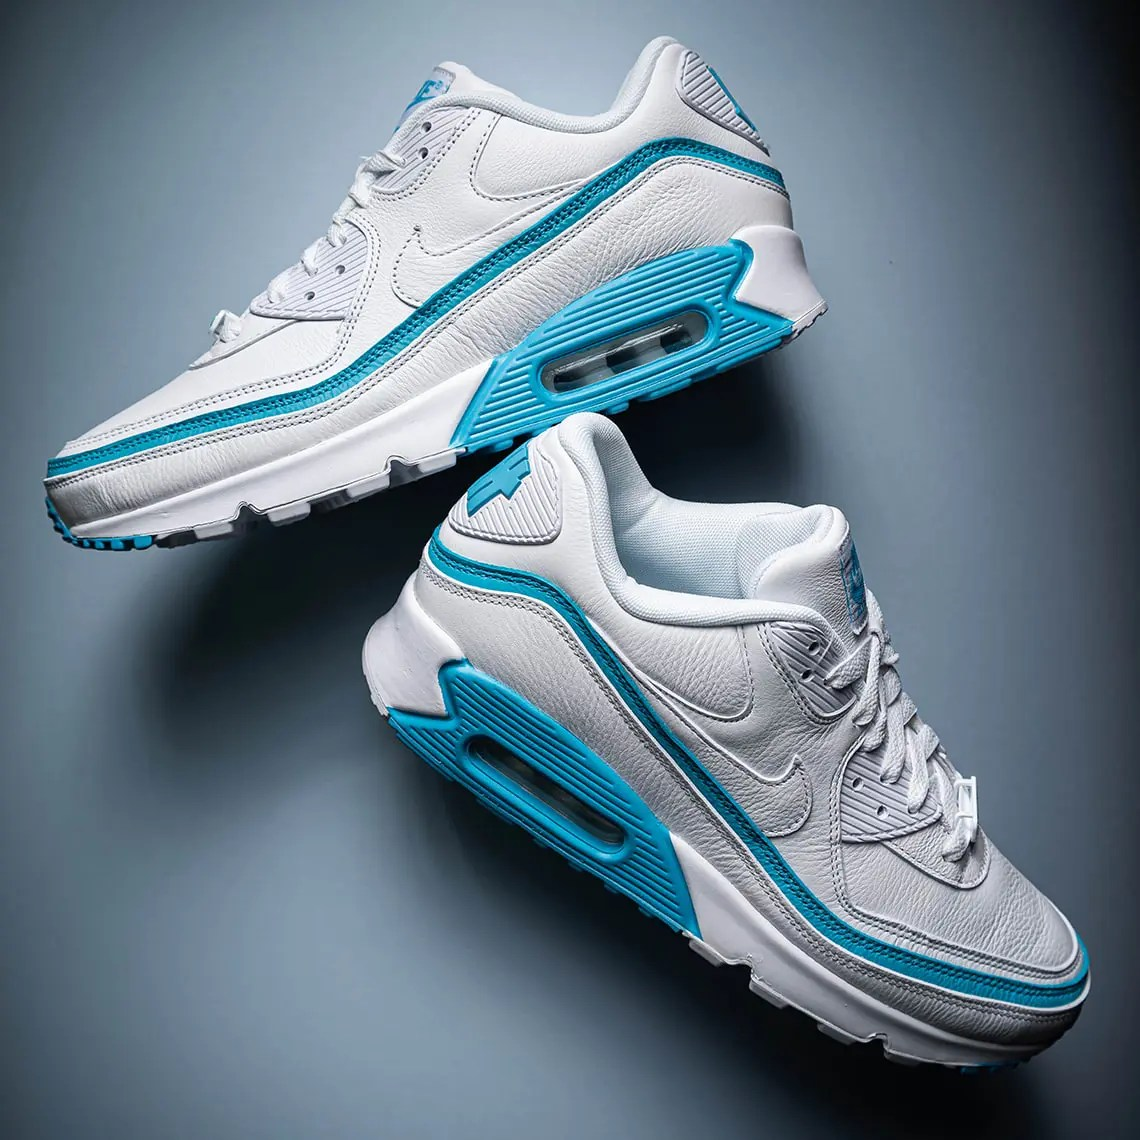 undefeated-air-max-90-white-blue-fury-cj7197-102-02